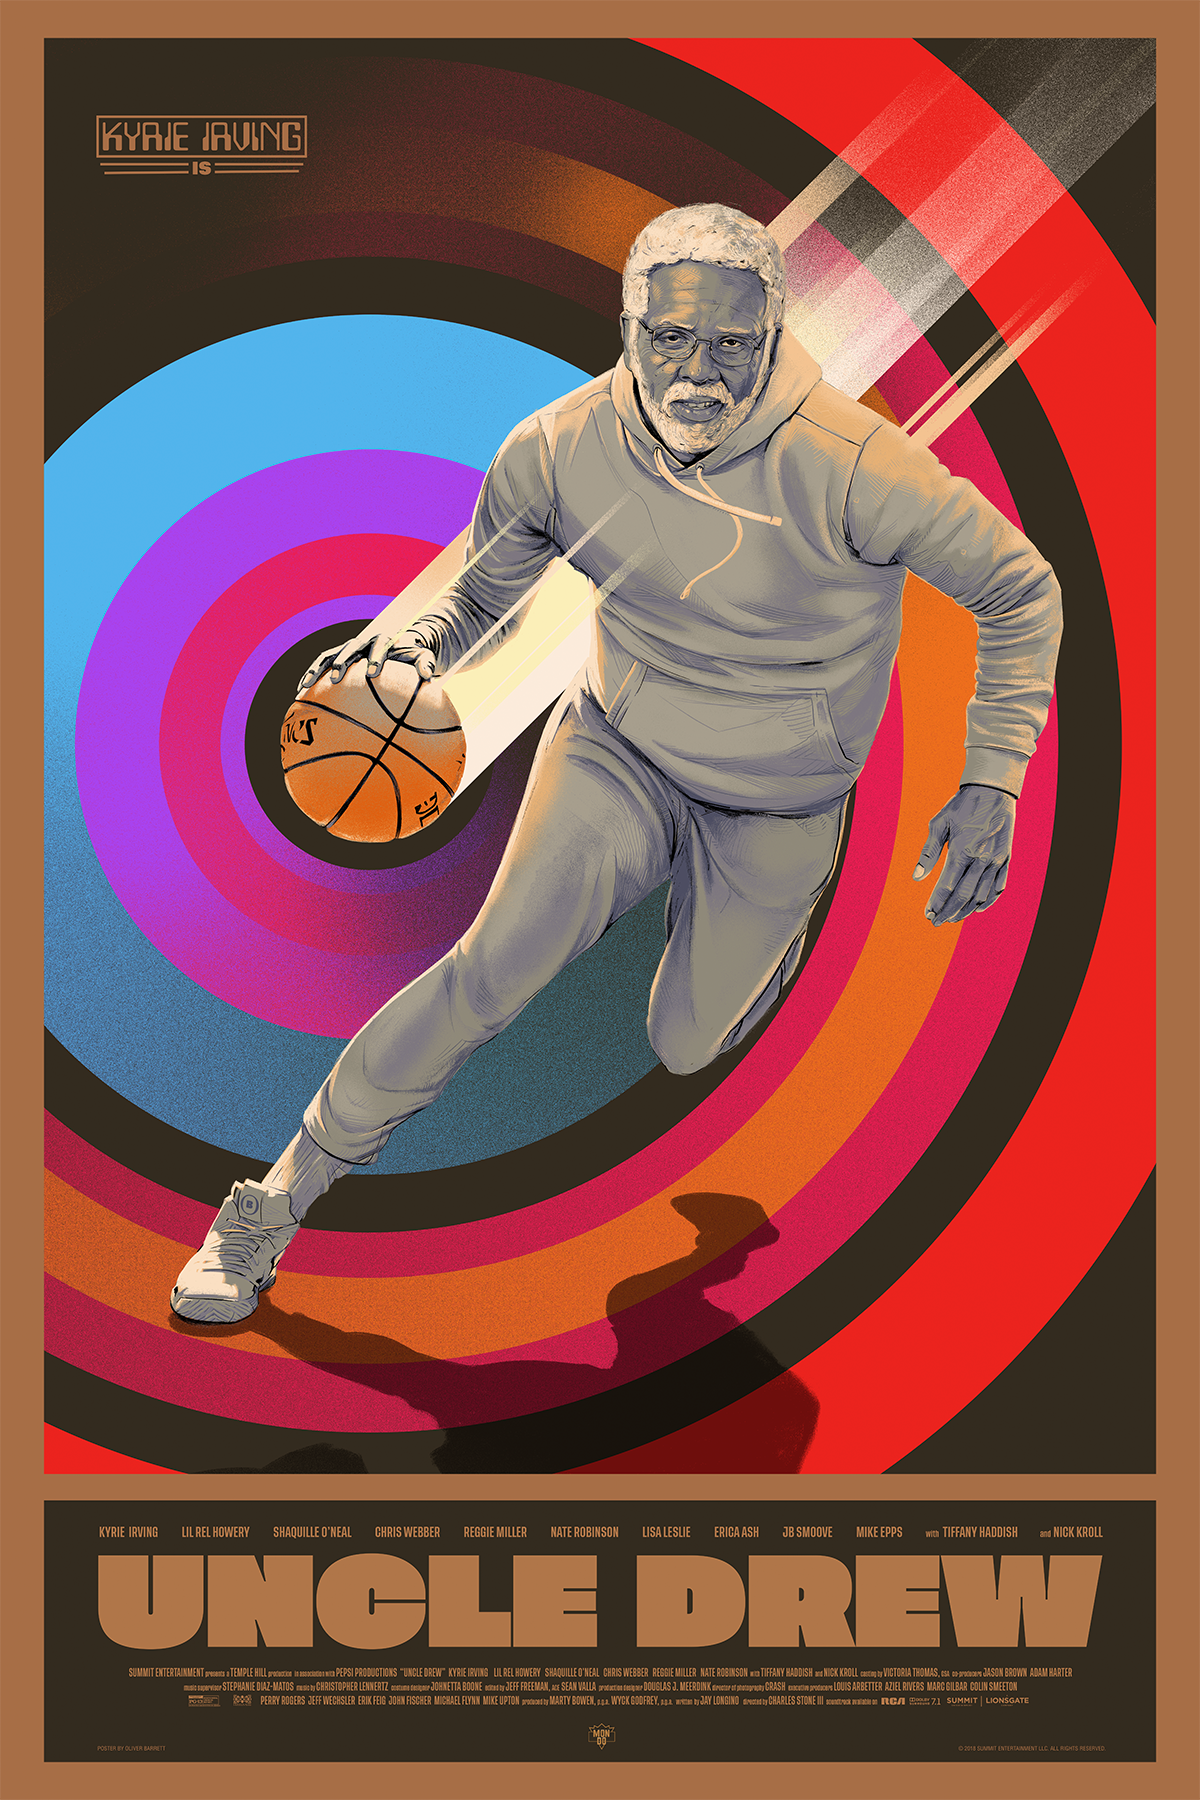 UNCLE DREW - Mondo / LionsgateLimited edition, screen-printed film poster.Available in the shop